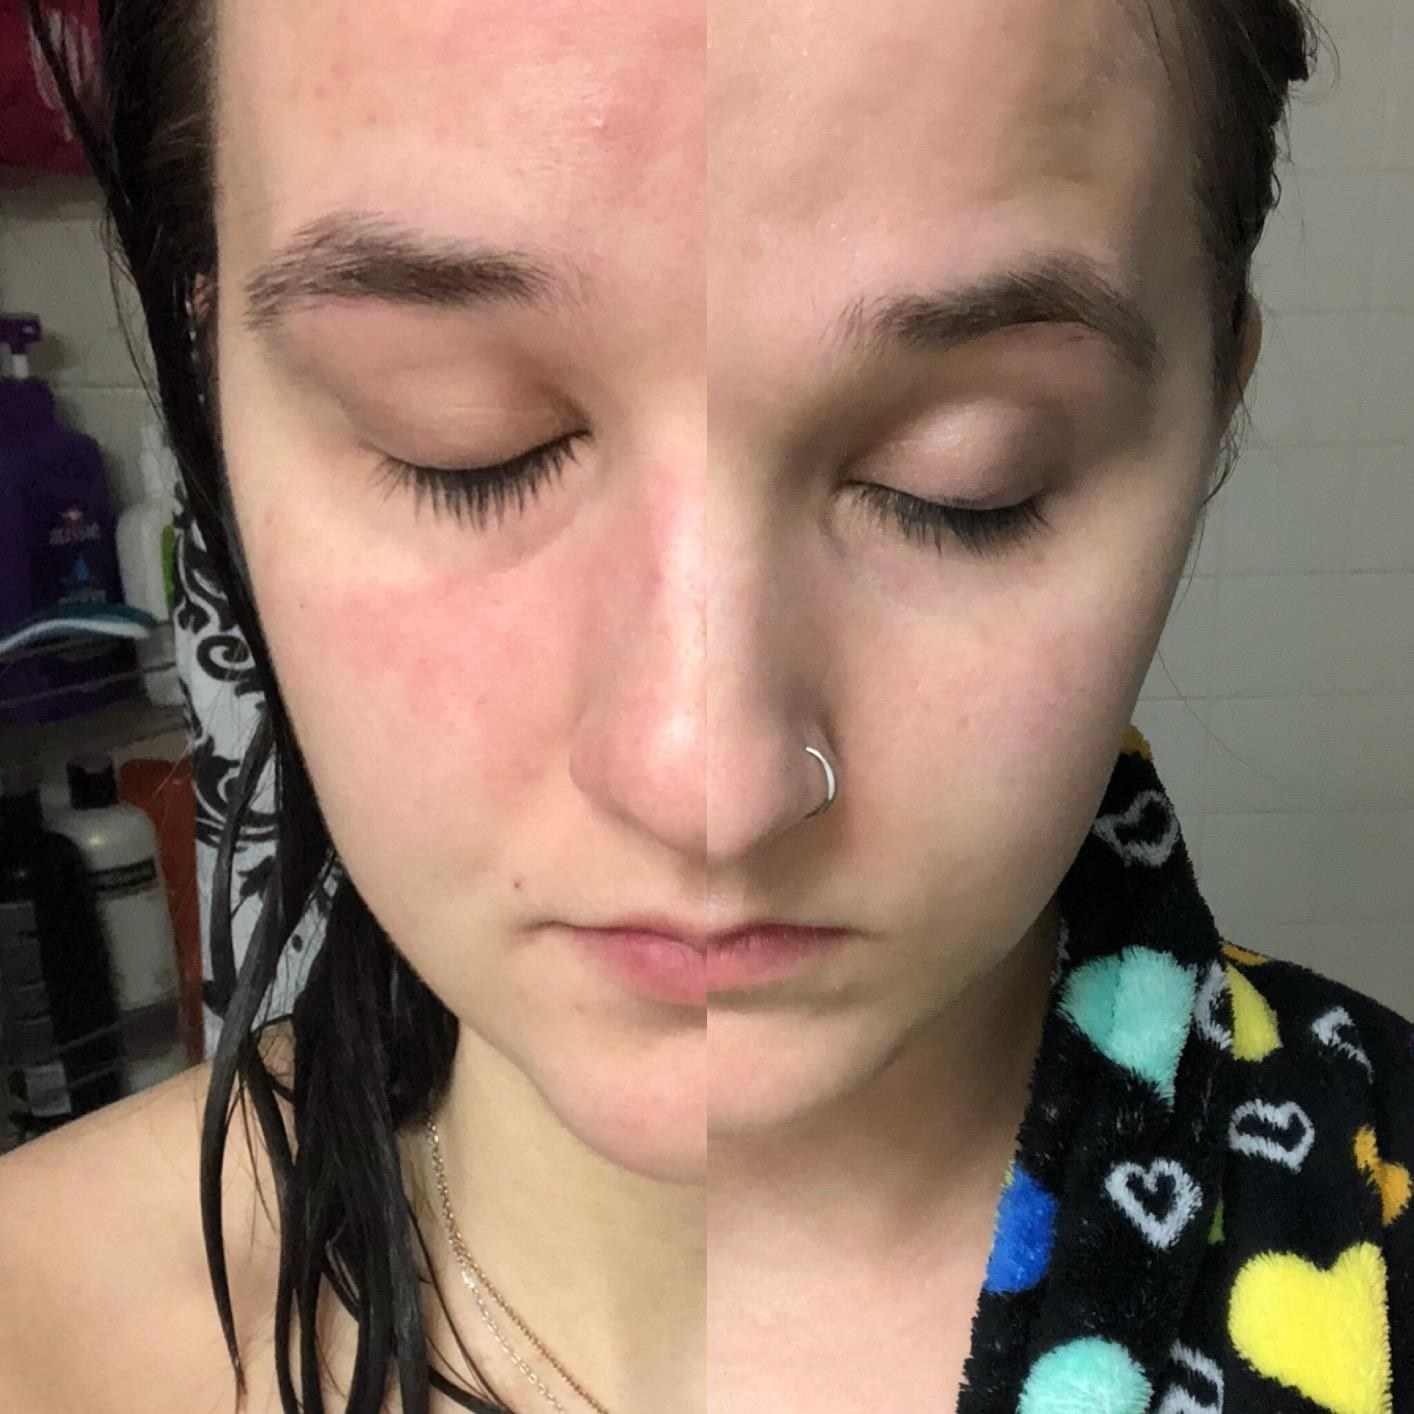 Reviewer showing before and after using the serum, now with calm skin